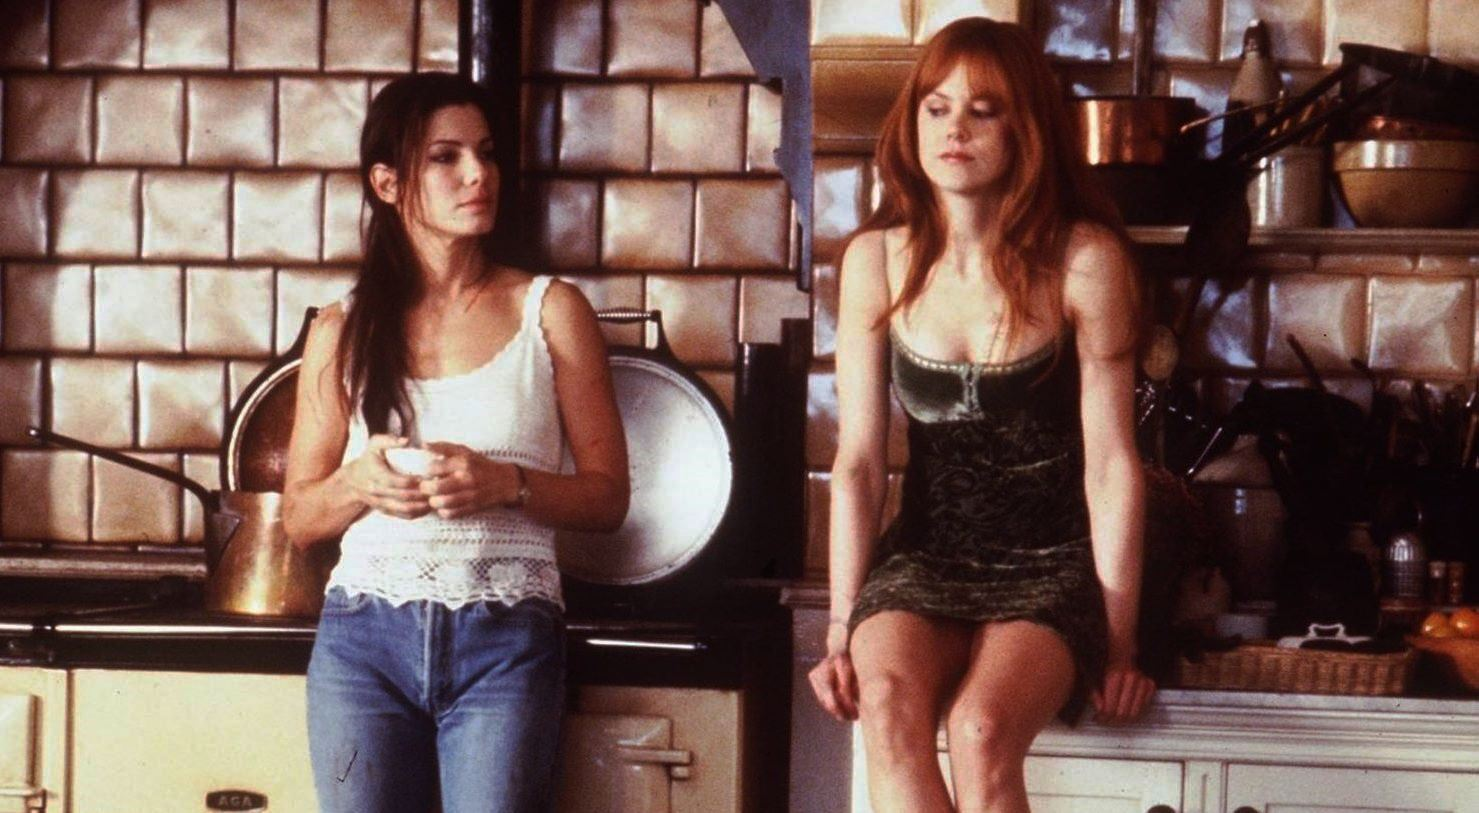 Sandra Bullock and Nicole Kidman as sisters from a family of witches in Practical Magic (1998)